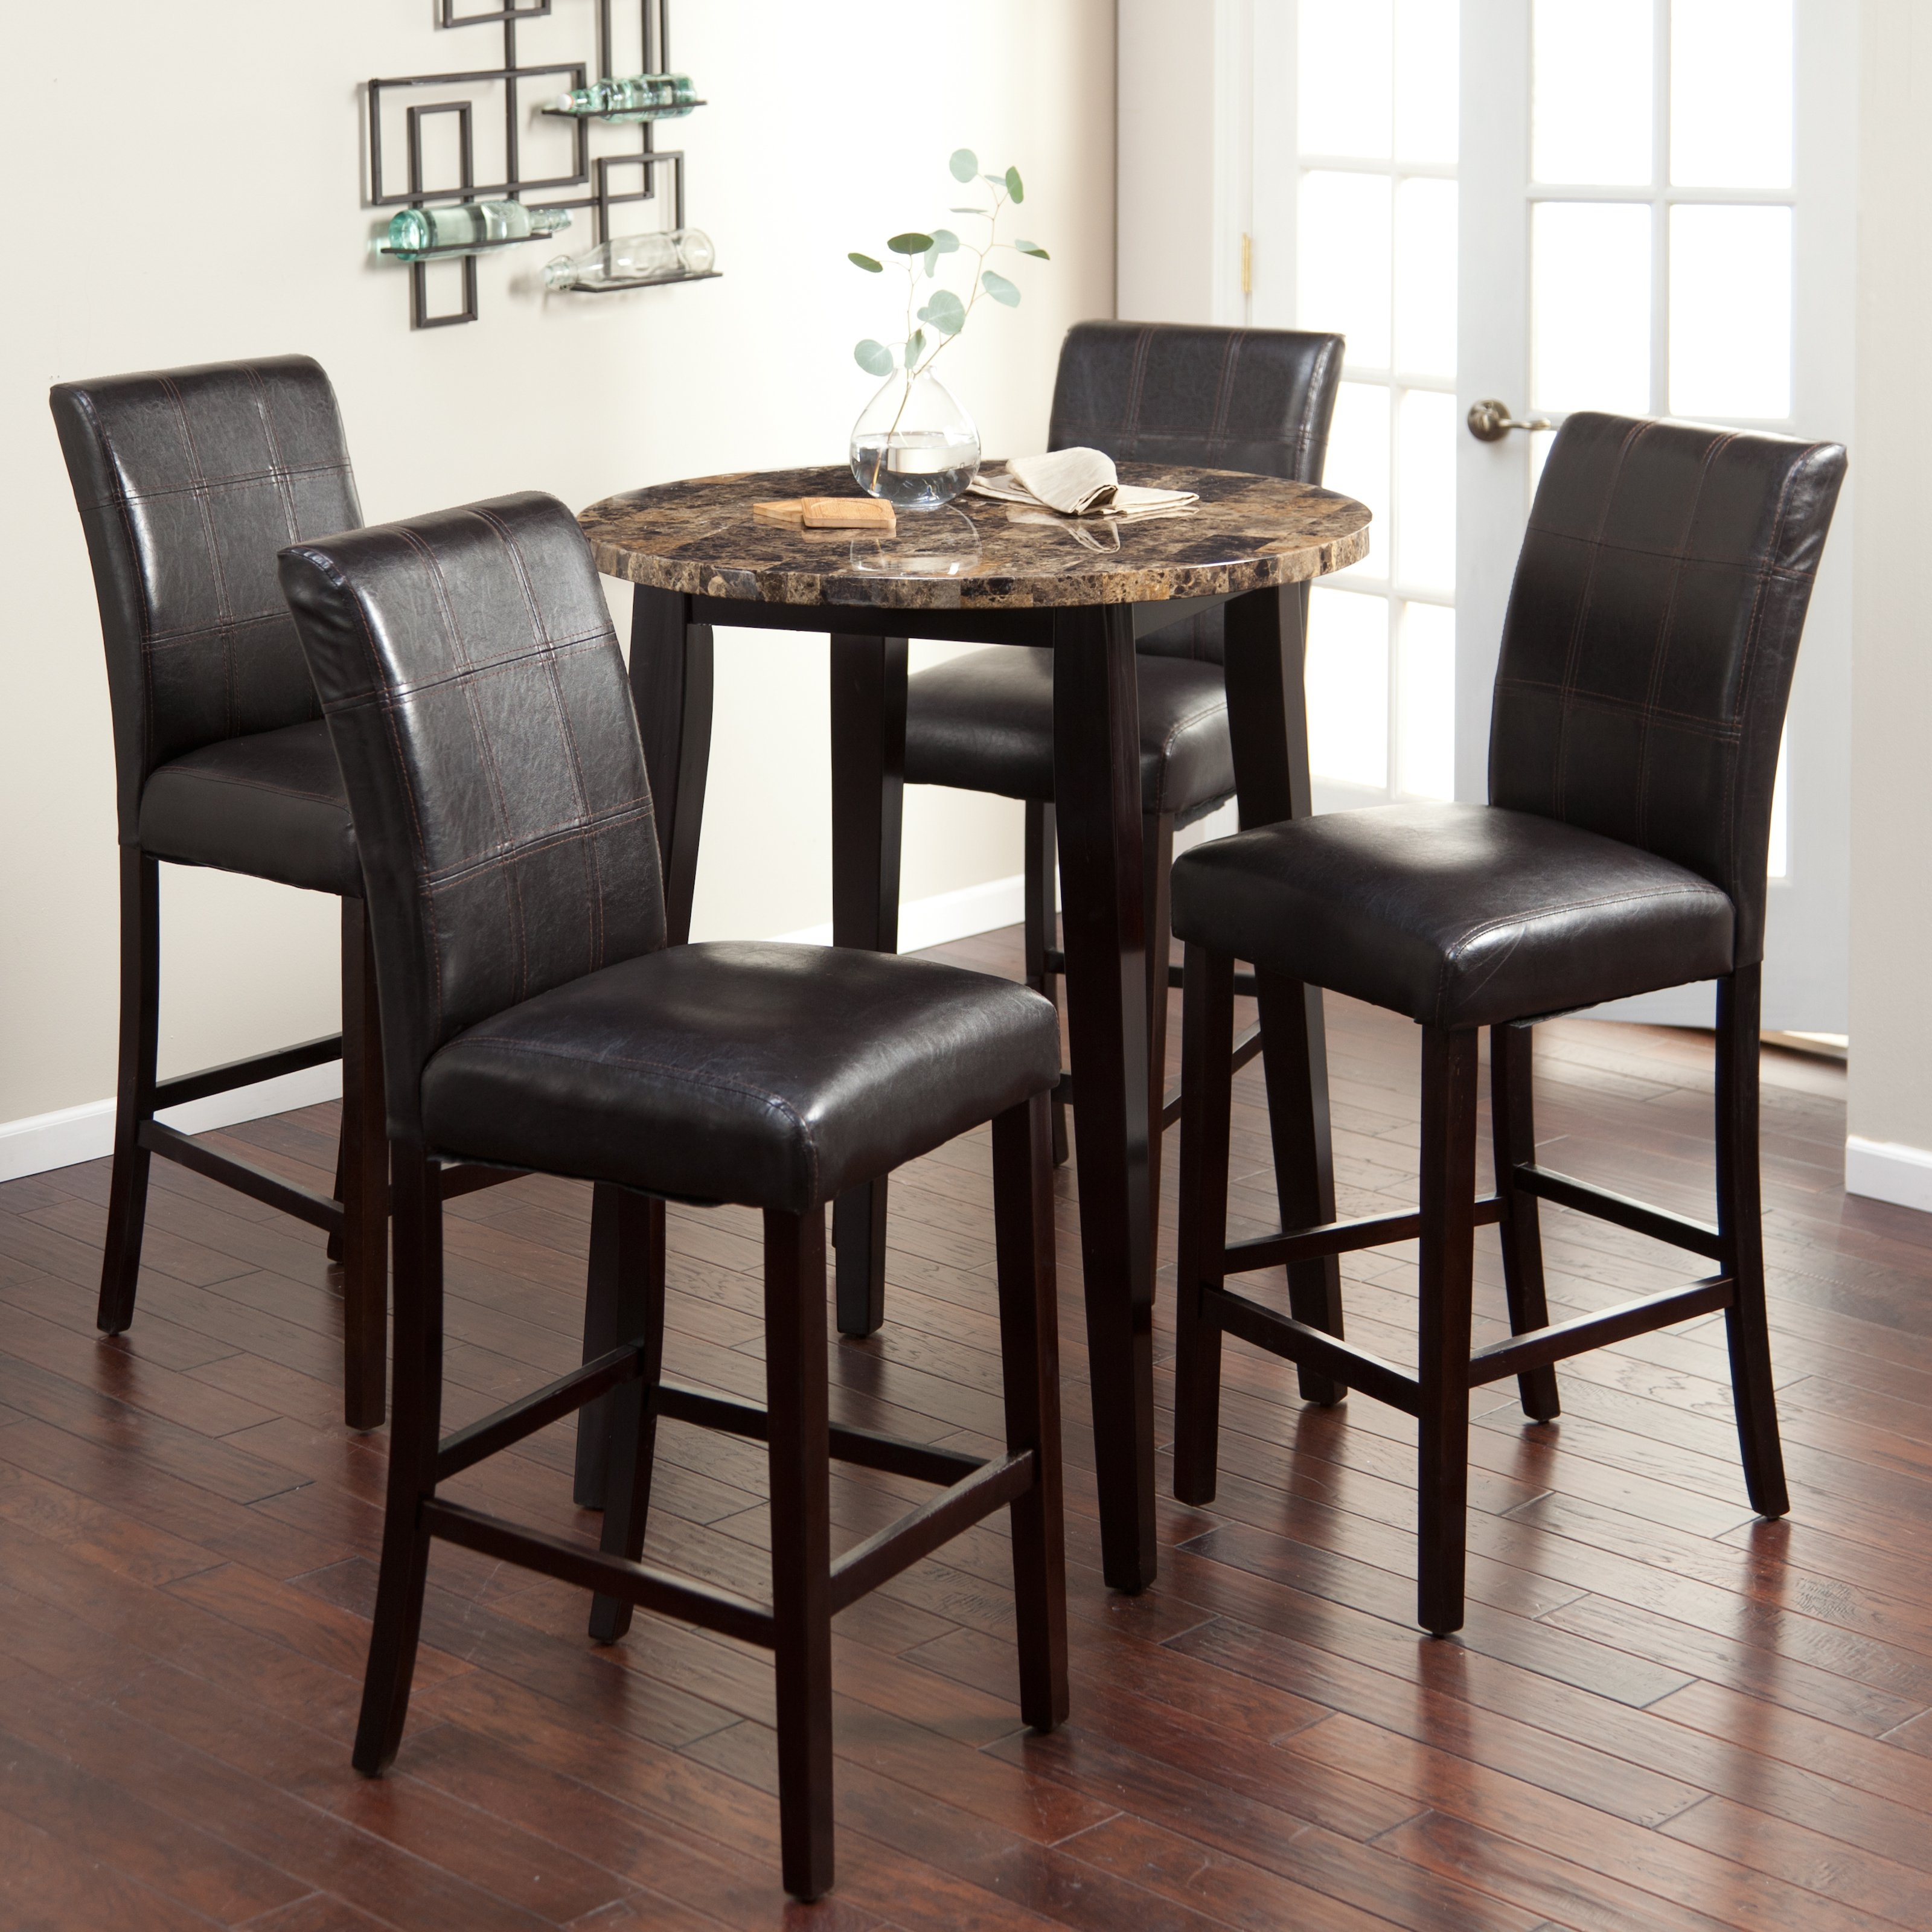 Bistro Table Sets For Kitchenpub height dining table